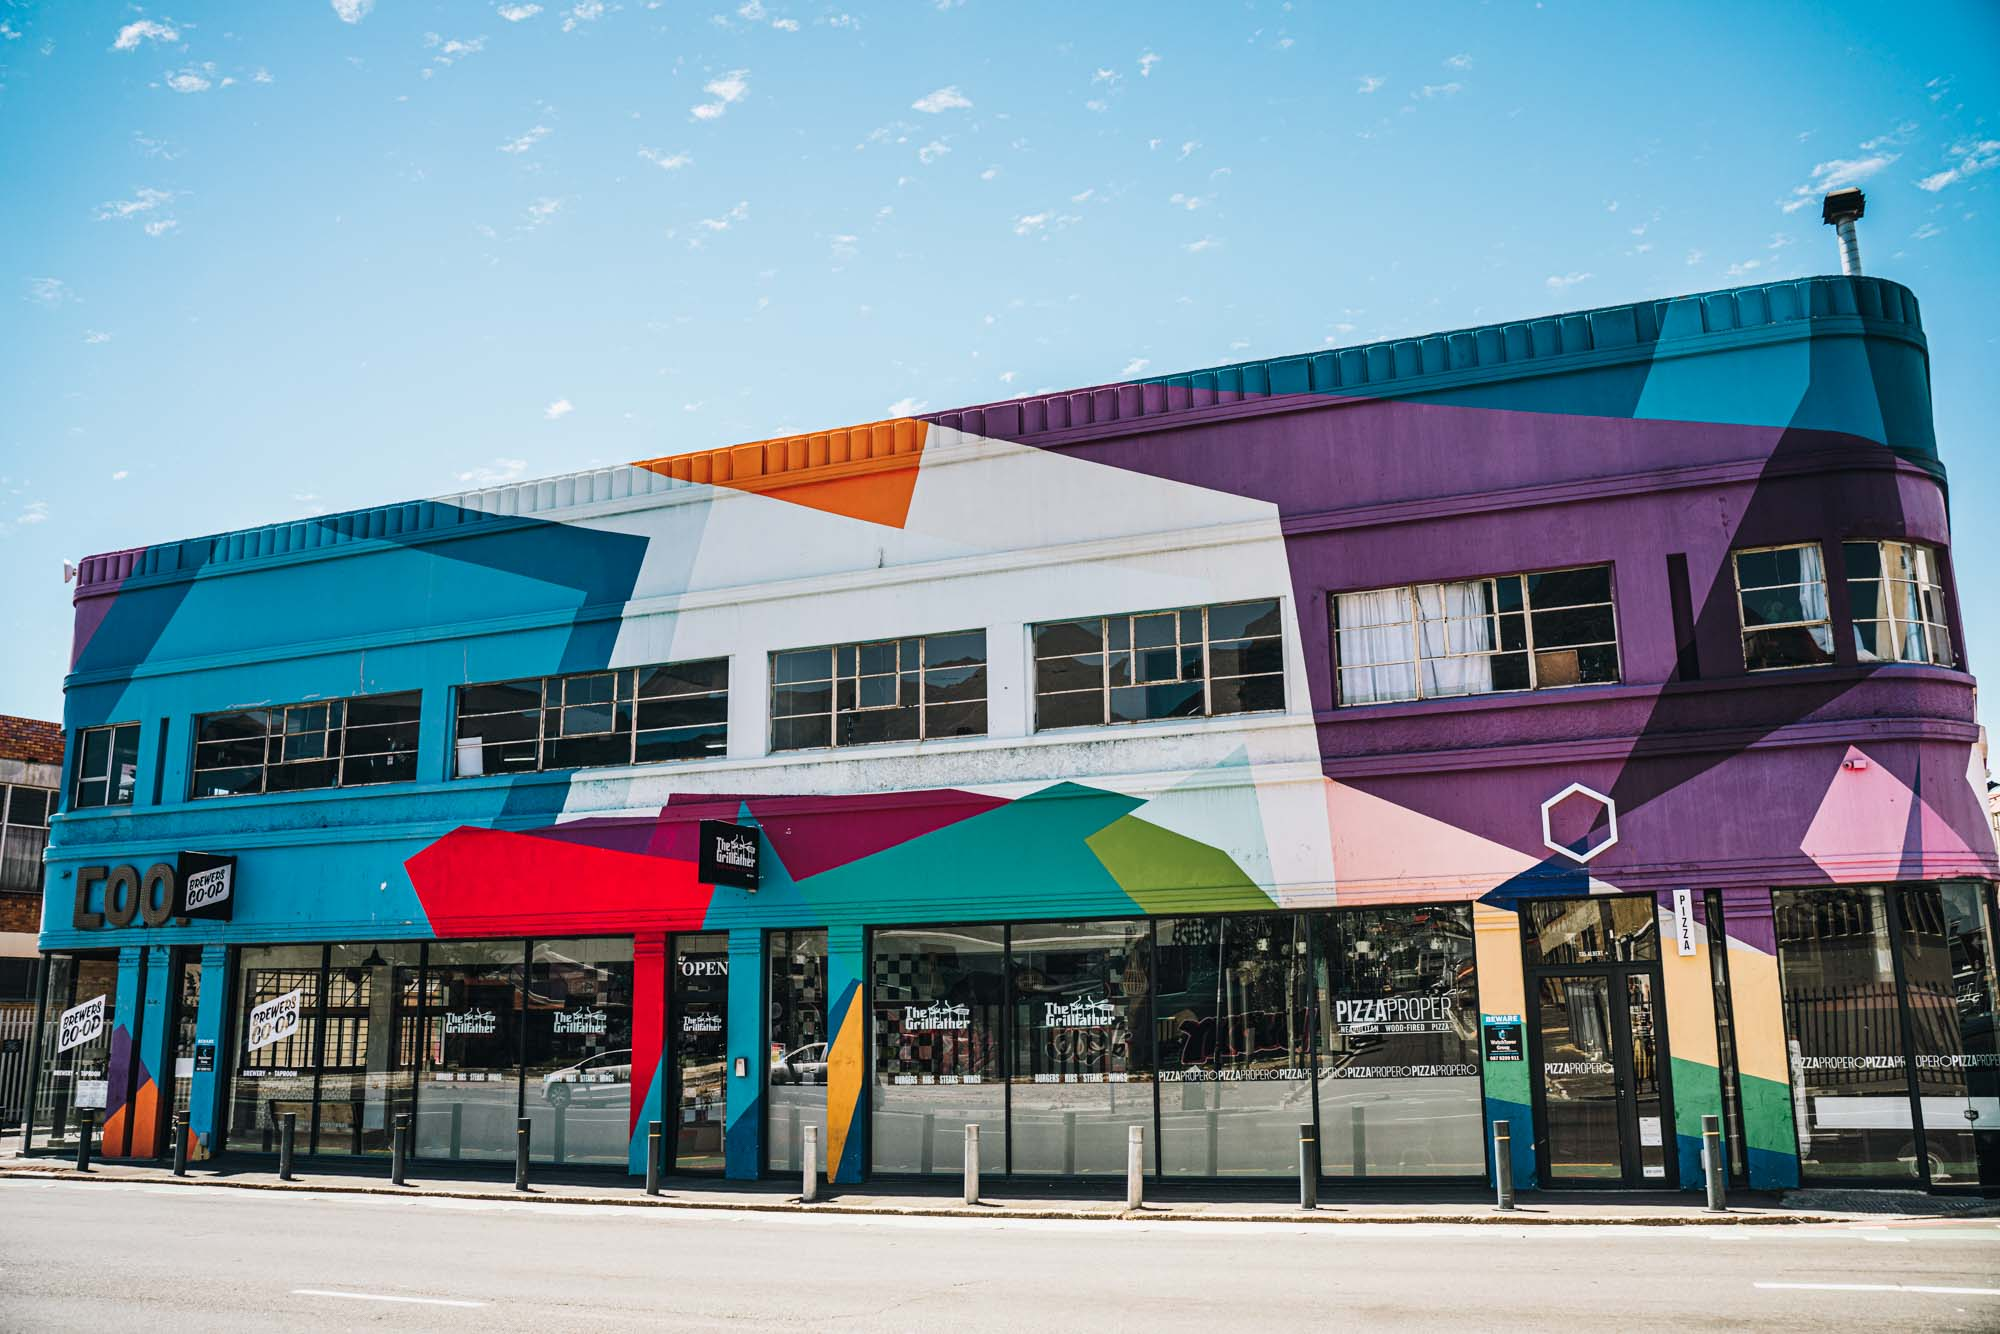 One of the many graffiti coloured buildings in Woodstock, Cape Town